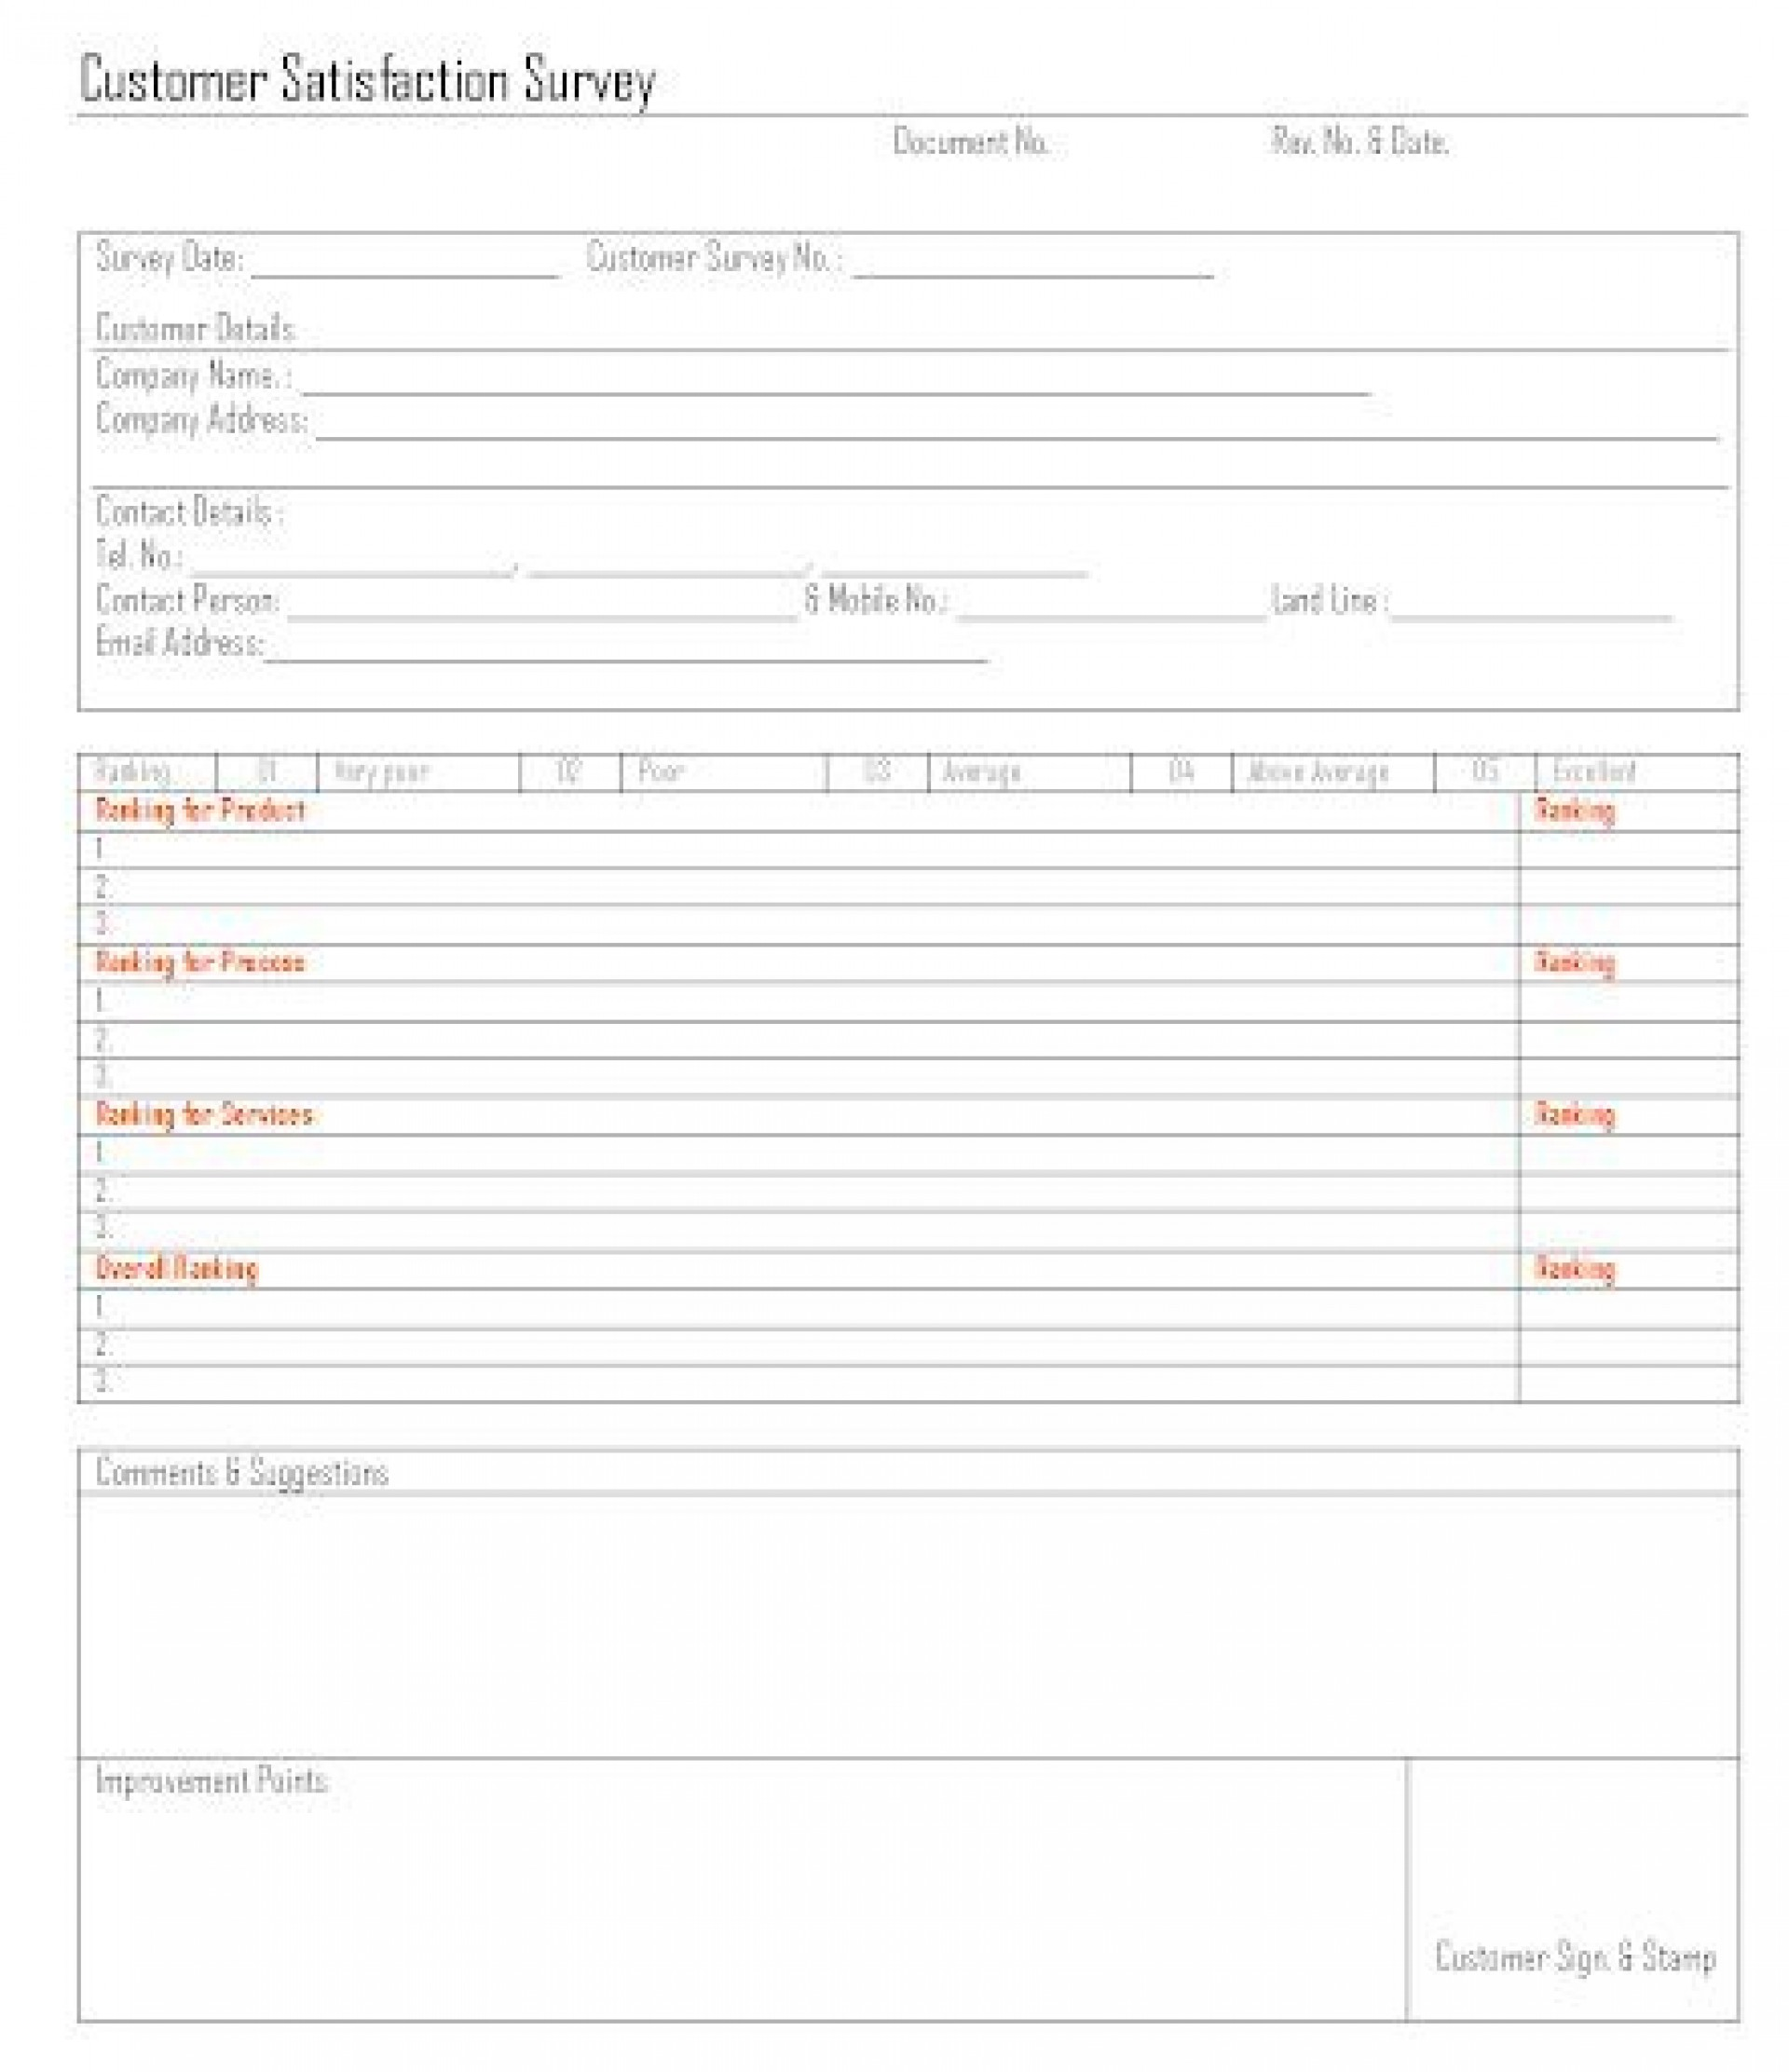 009 Outstanding Customer Satisfaction Survey Template Word Inspiration  Doc Form1920